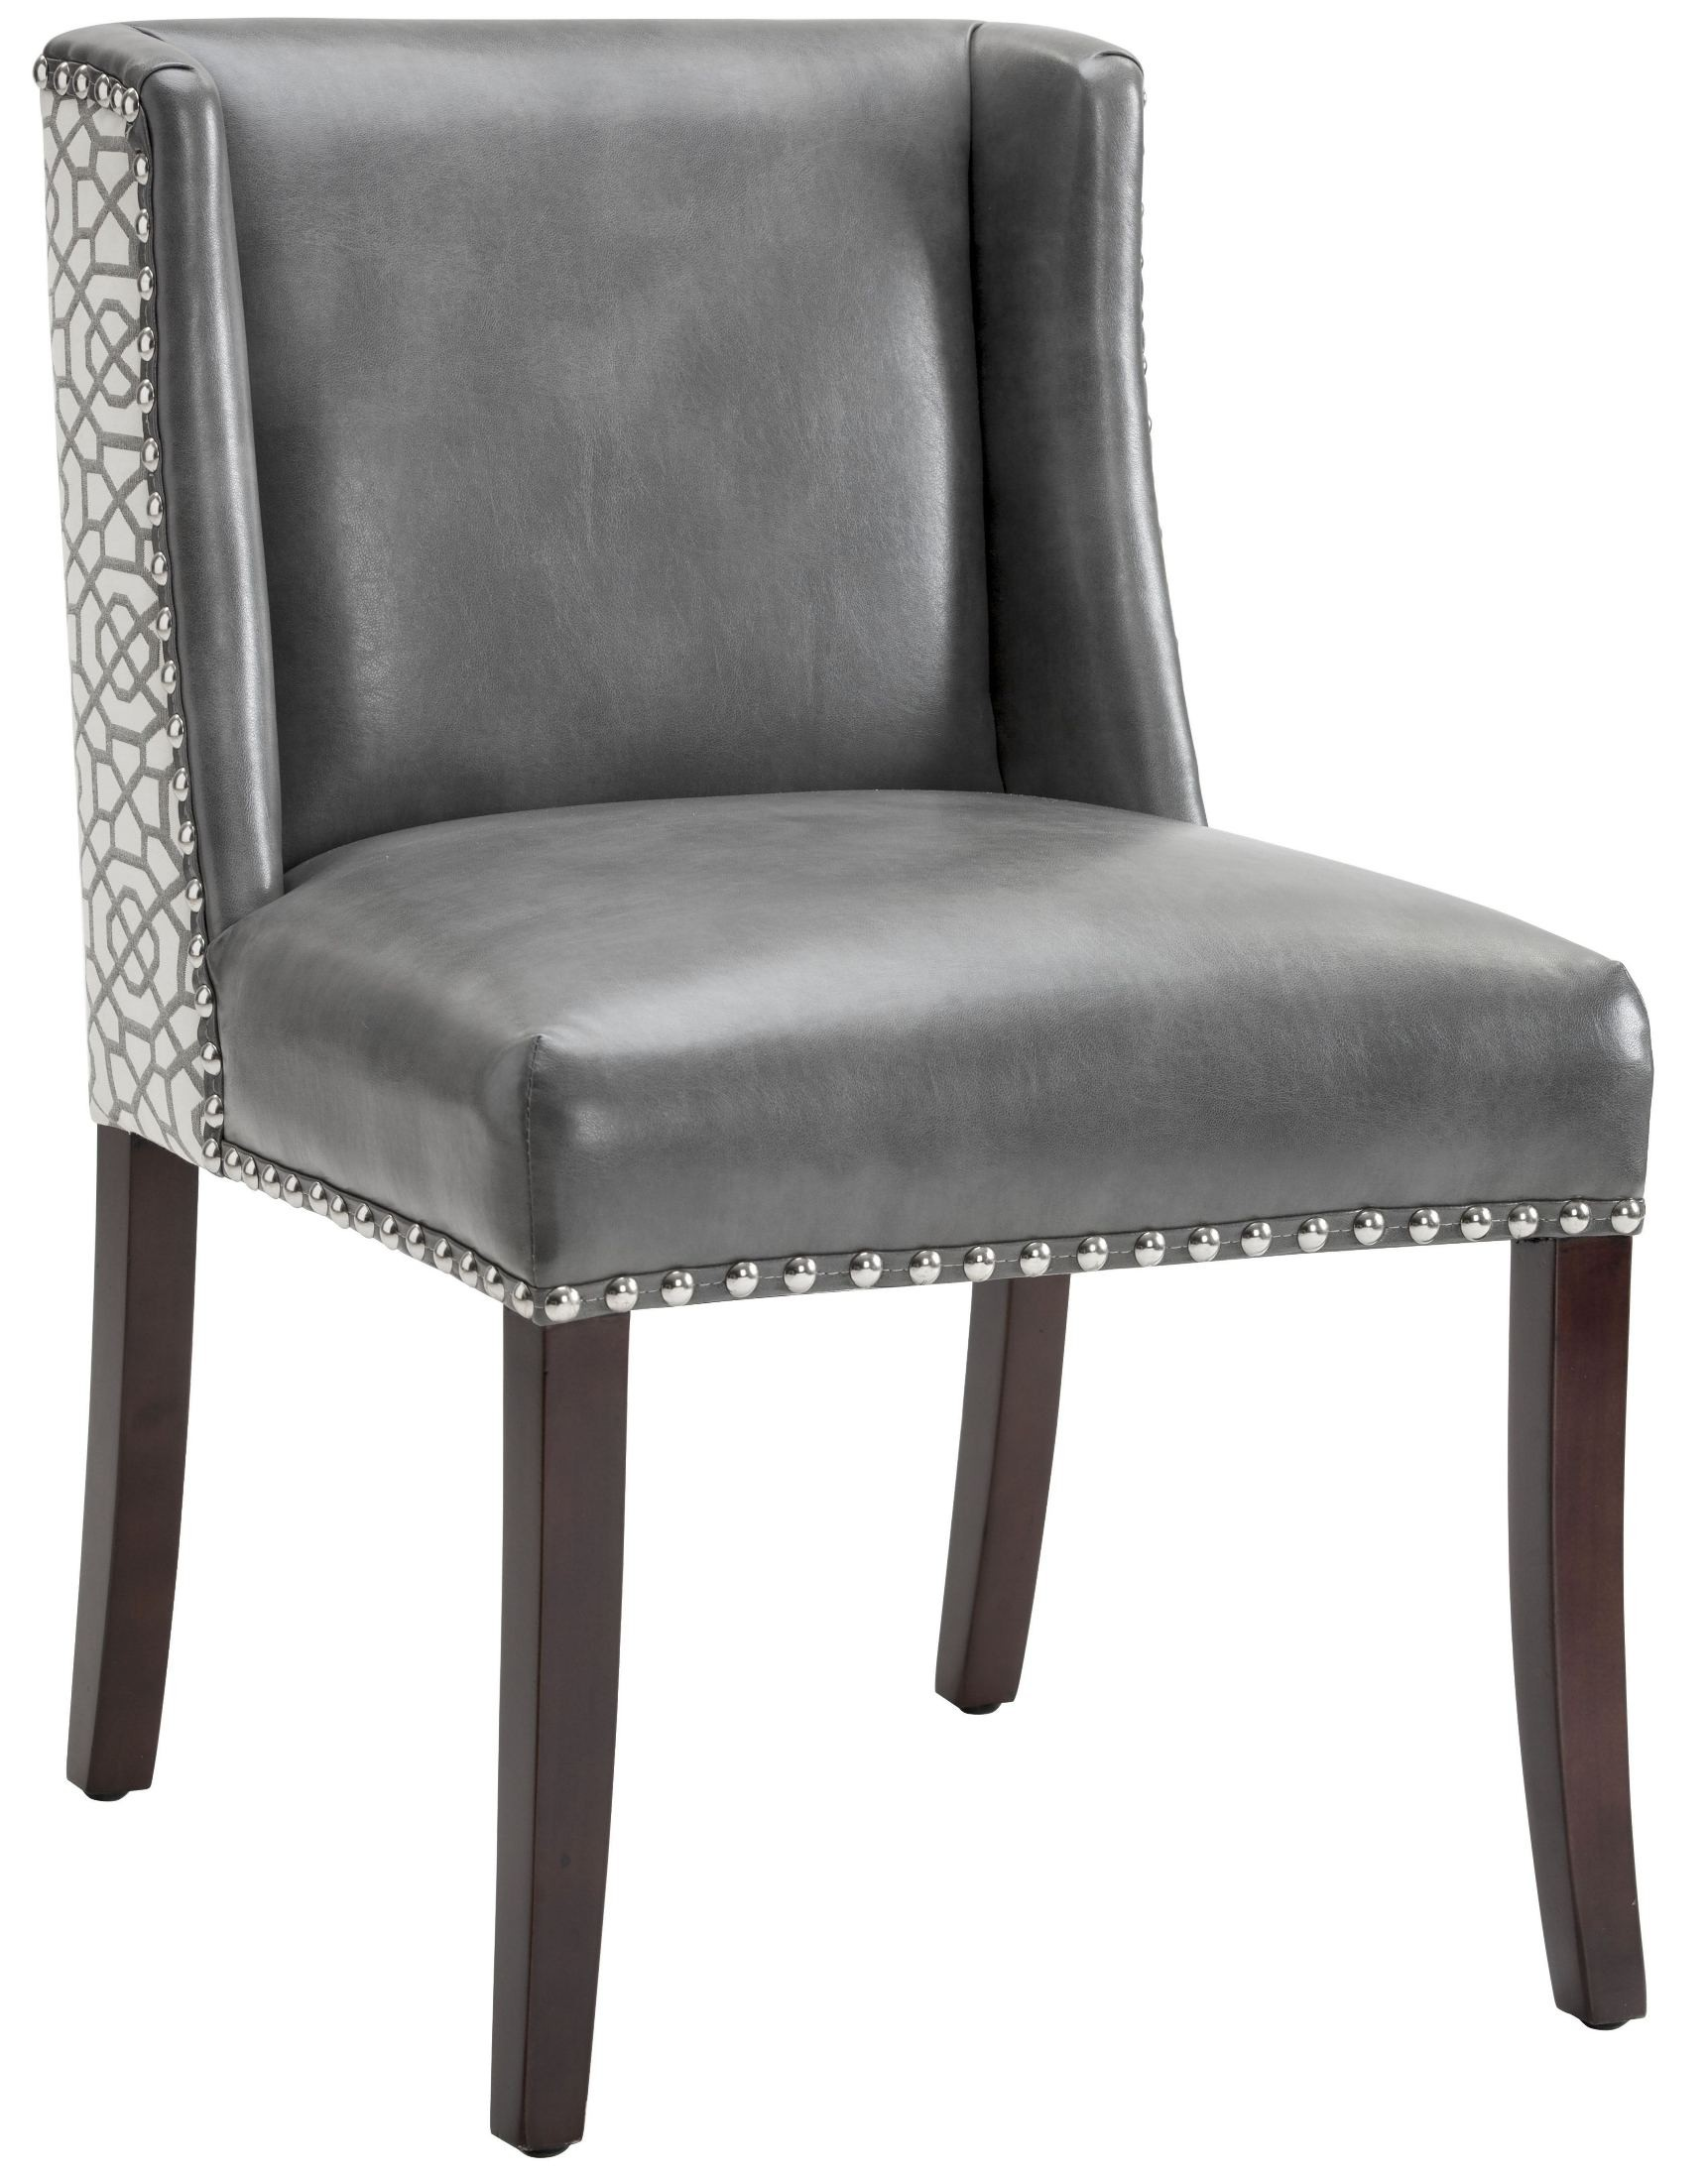 Dining Chair Fabric Marlin Grey Leather And Diamond Fabric Dining Chair Set Of